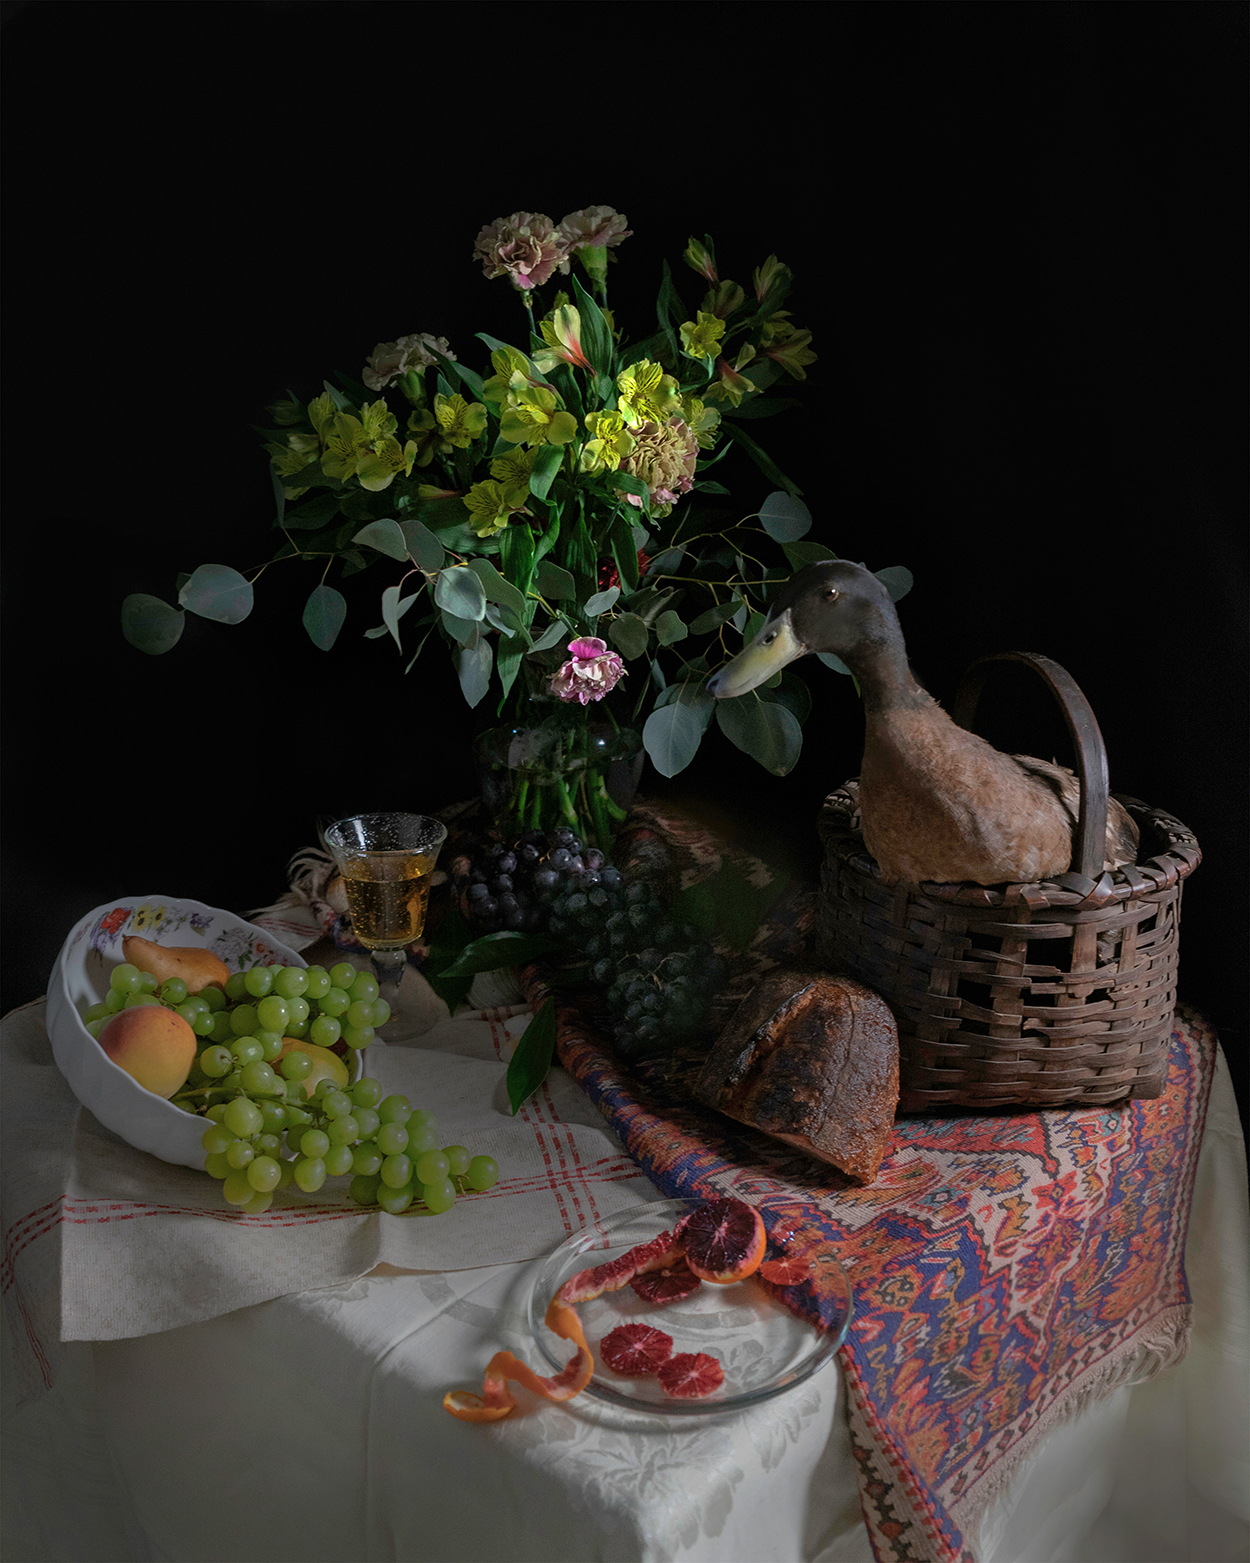 duck in basket on table with flowers and fruit